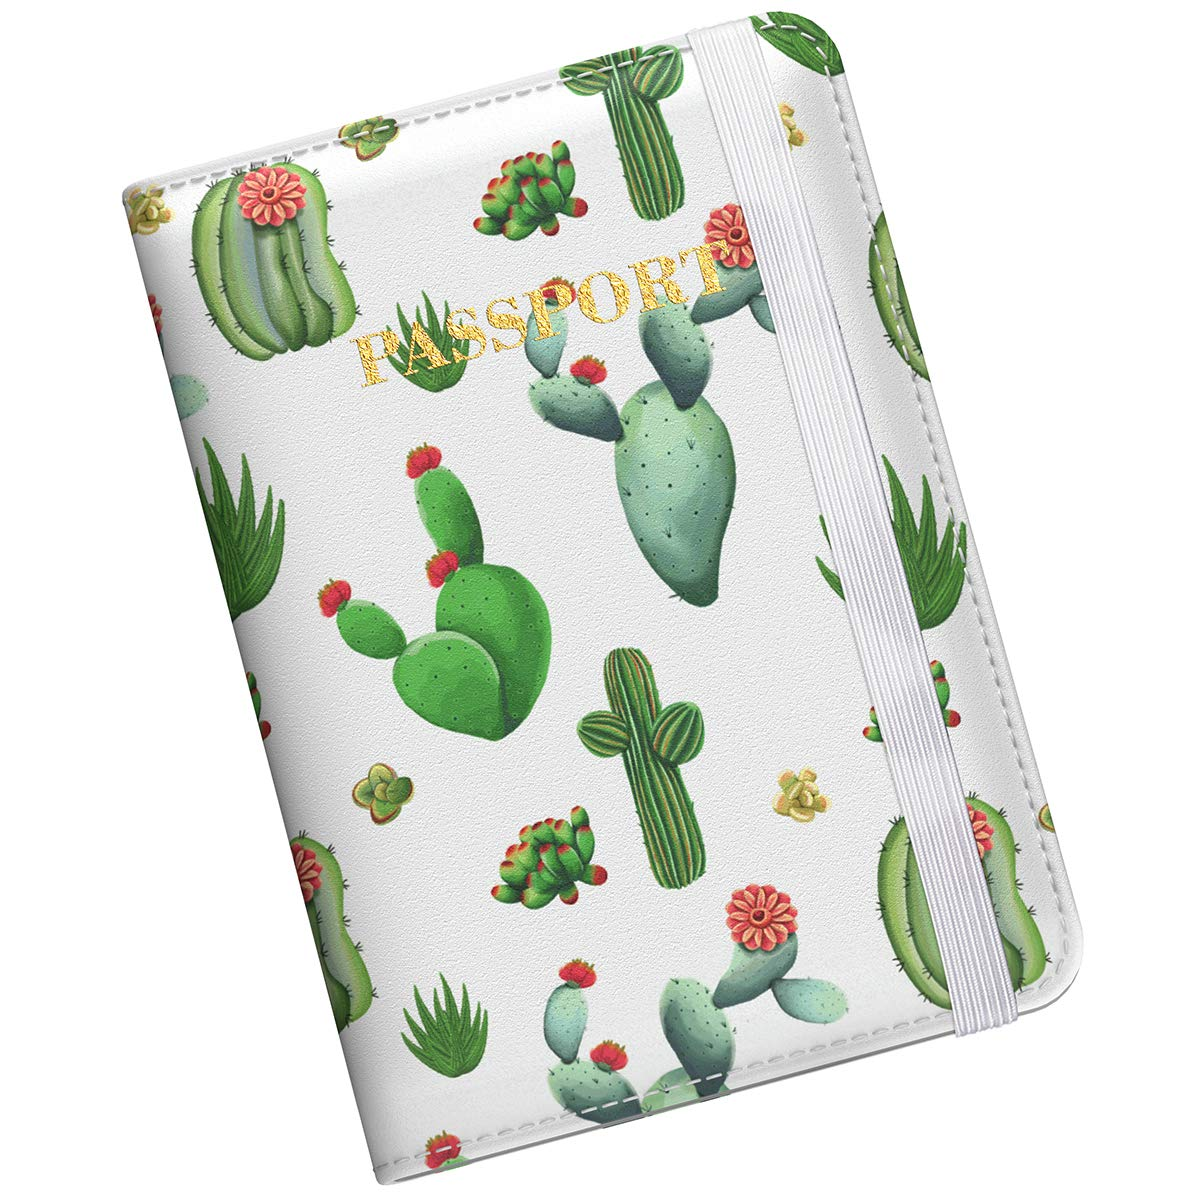 Supgear Passport Holder Protector, RFID Blocking PU Leather Passport Cover Travel Wallet Case with Magnetic Buckle for Men & Women (Cactus) by Supgear